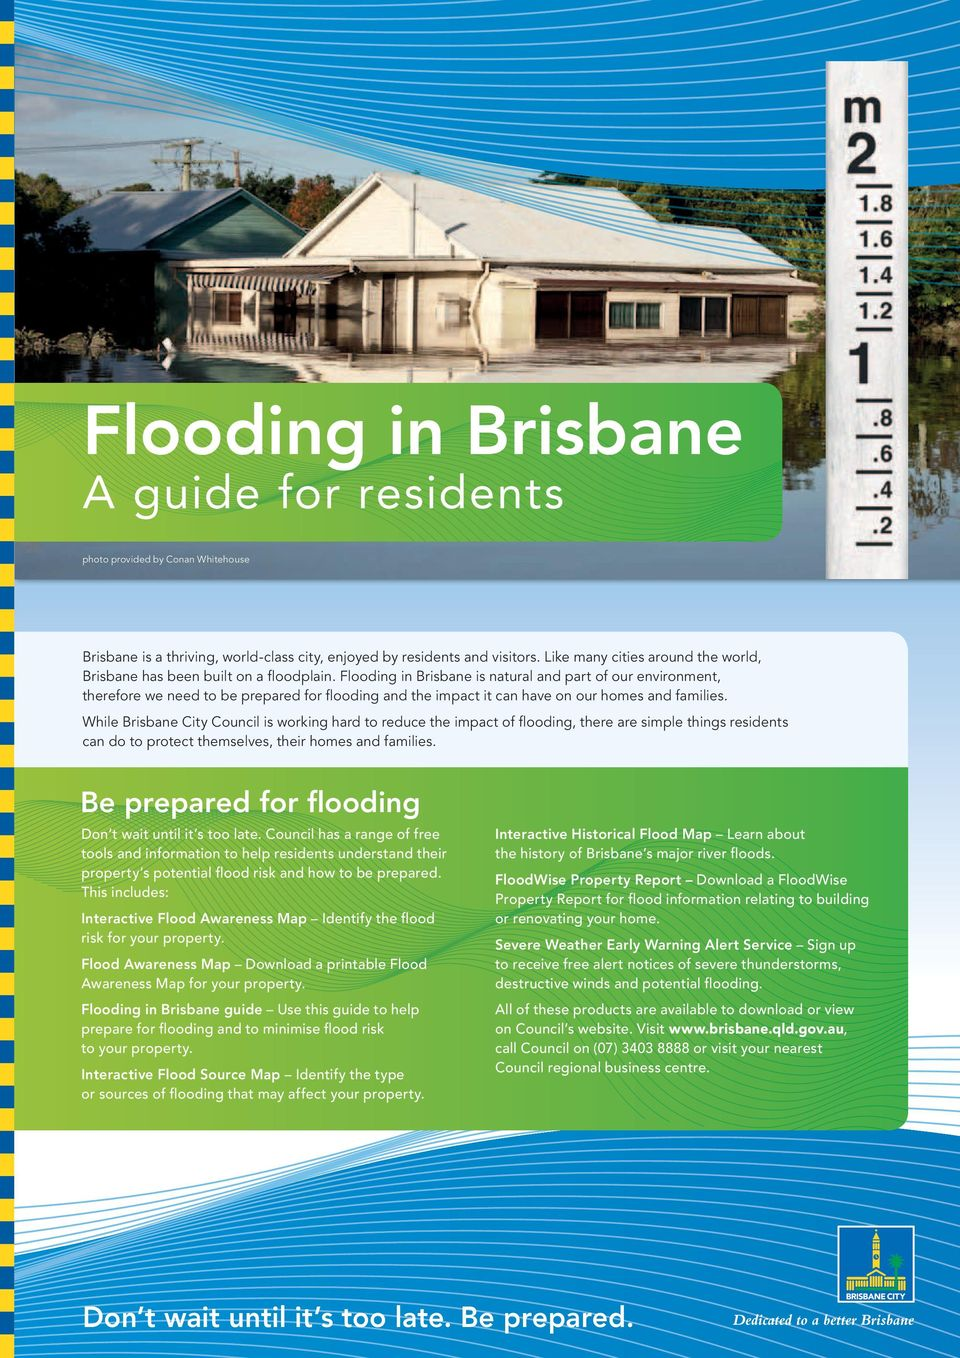 Flooding in Brisbane is natural and part of our environment, therefore we need to be prepared for flooding and the impact it can have on our homes and families.